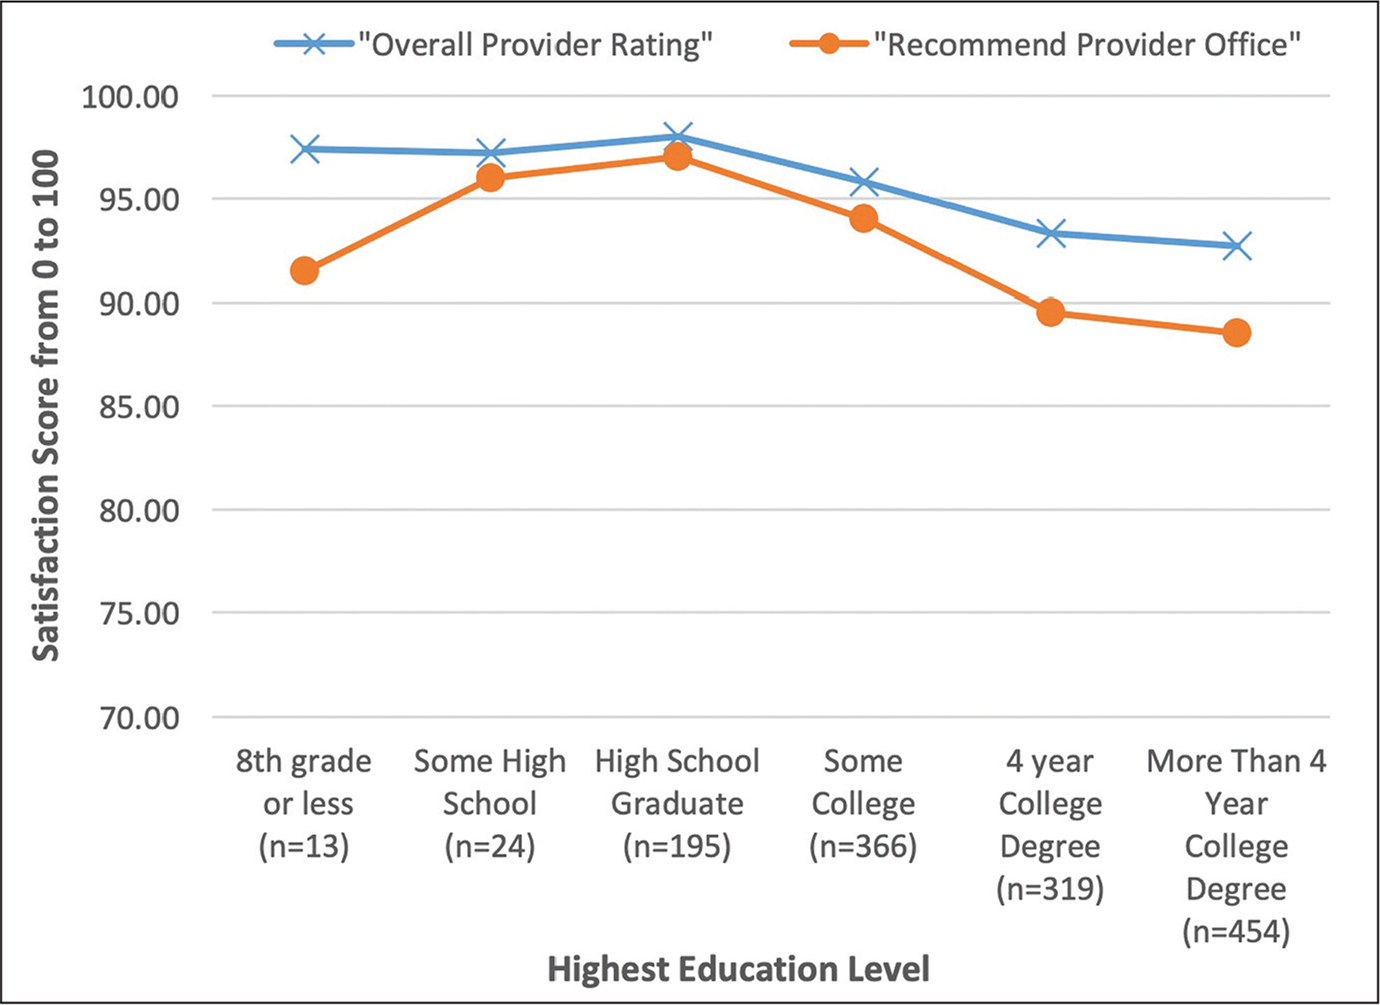 Correlation between highest education level and satisfaction scores.